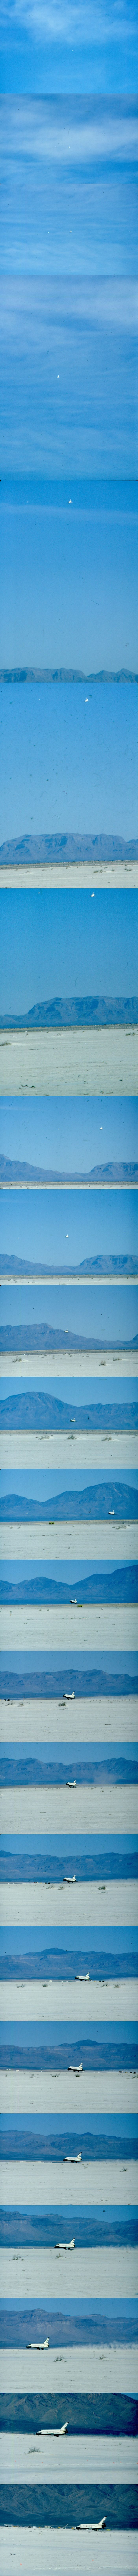 Space Shuttle Columbia STS-3 Landing at White Sands Space Harbor New Mexico March 30th 1982 photographed by my Dad